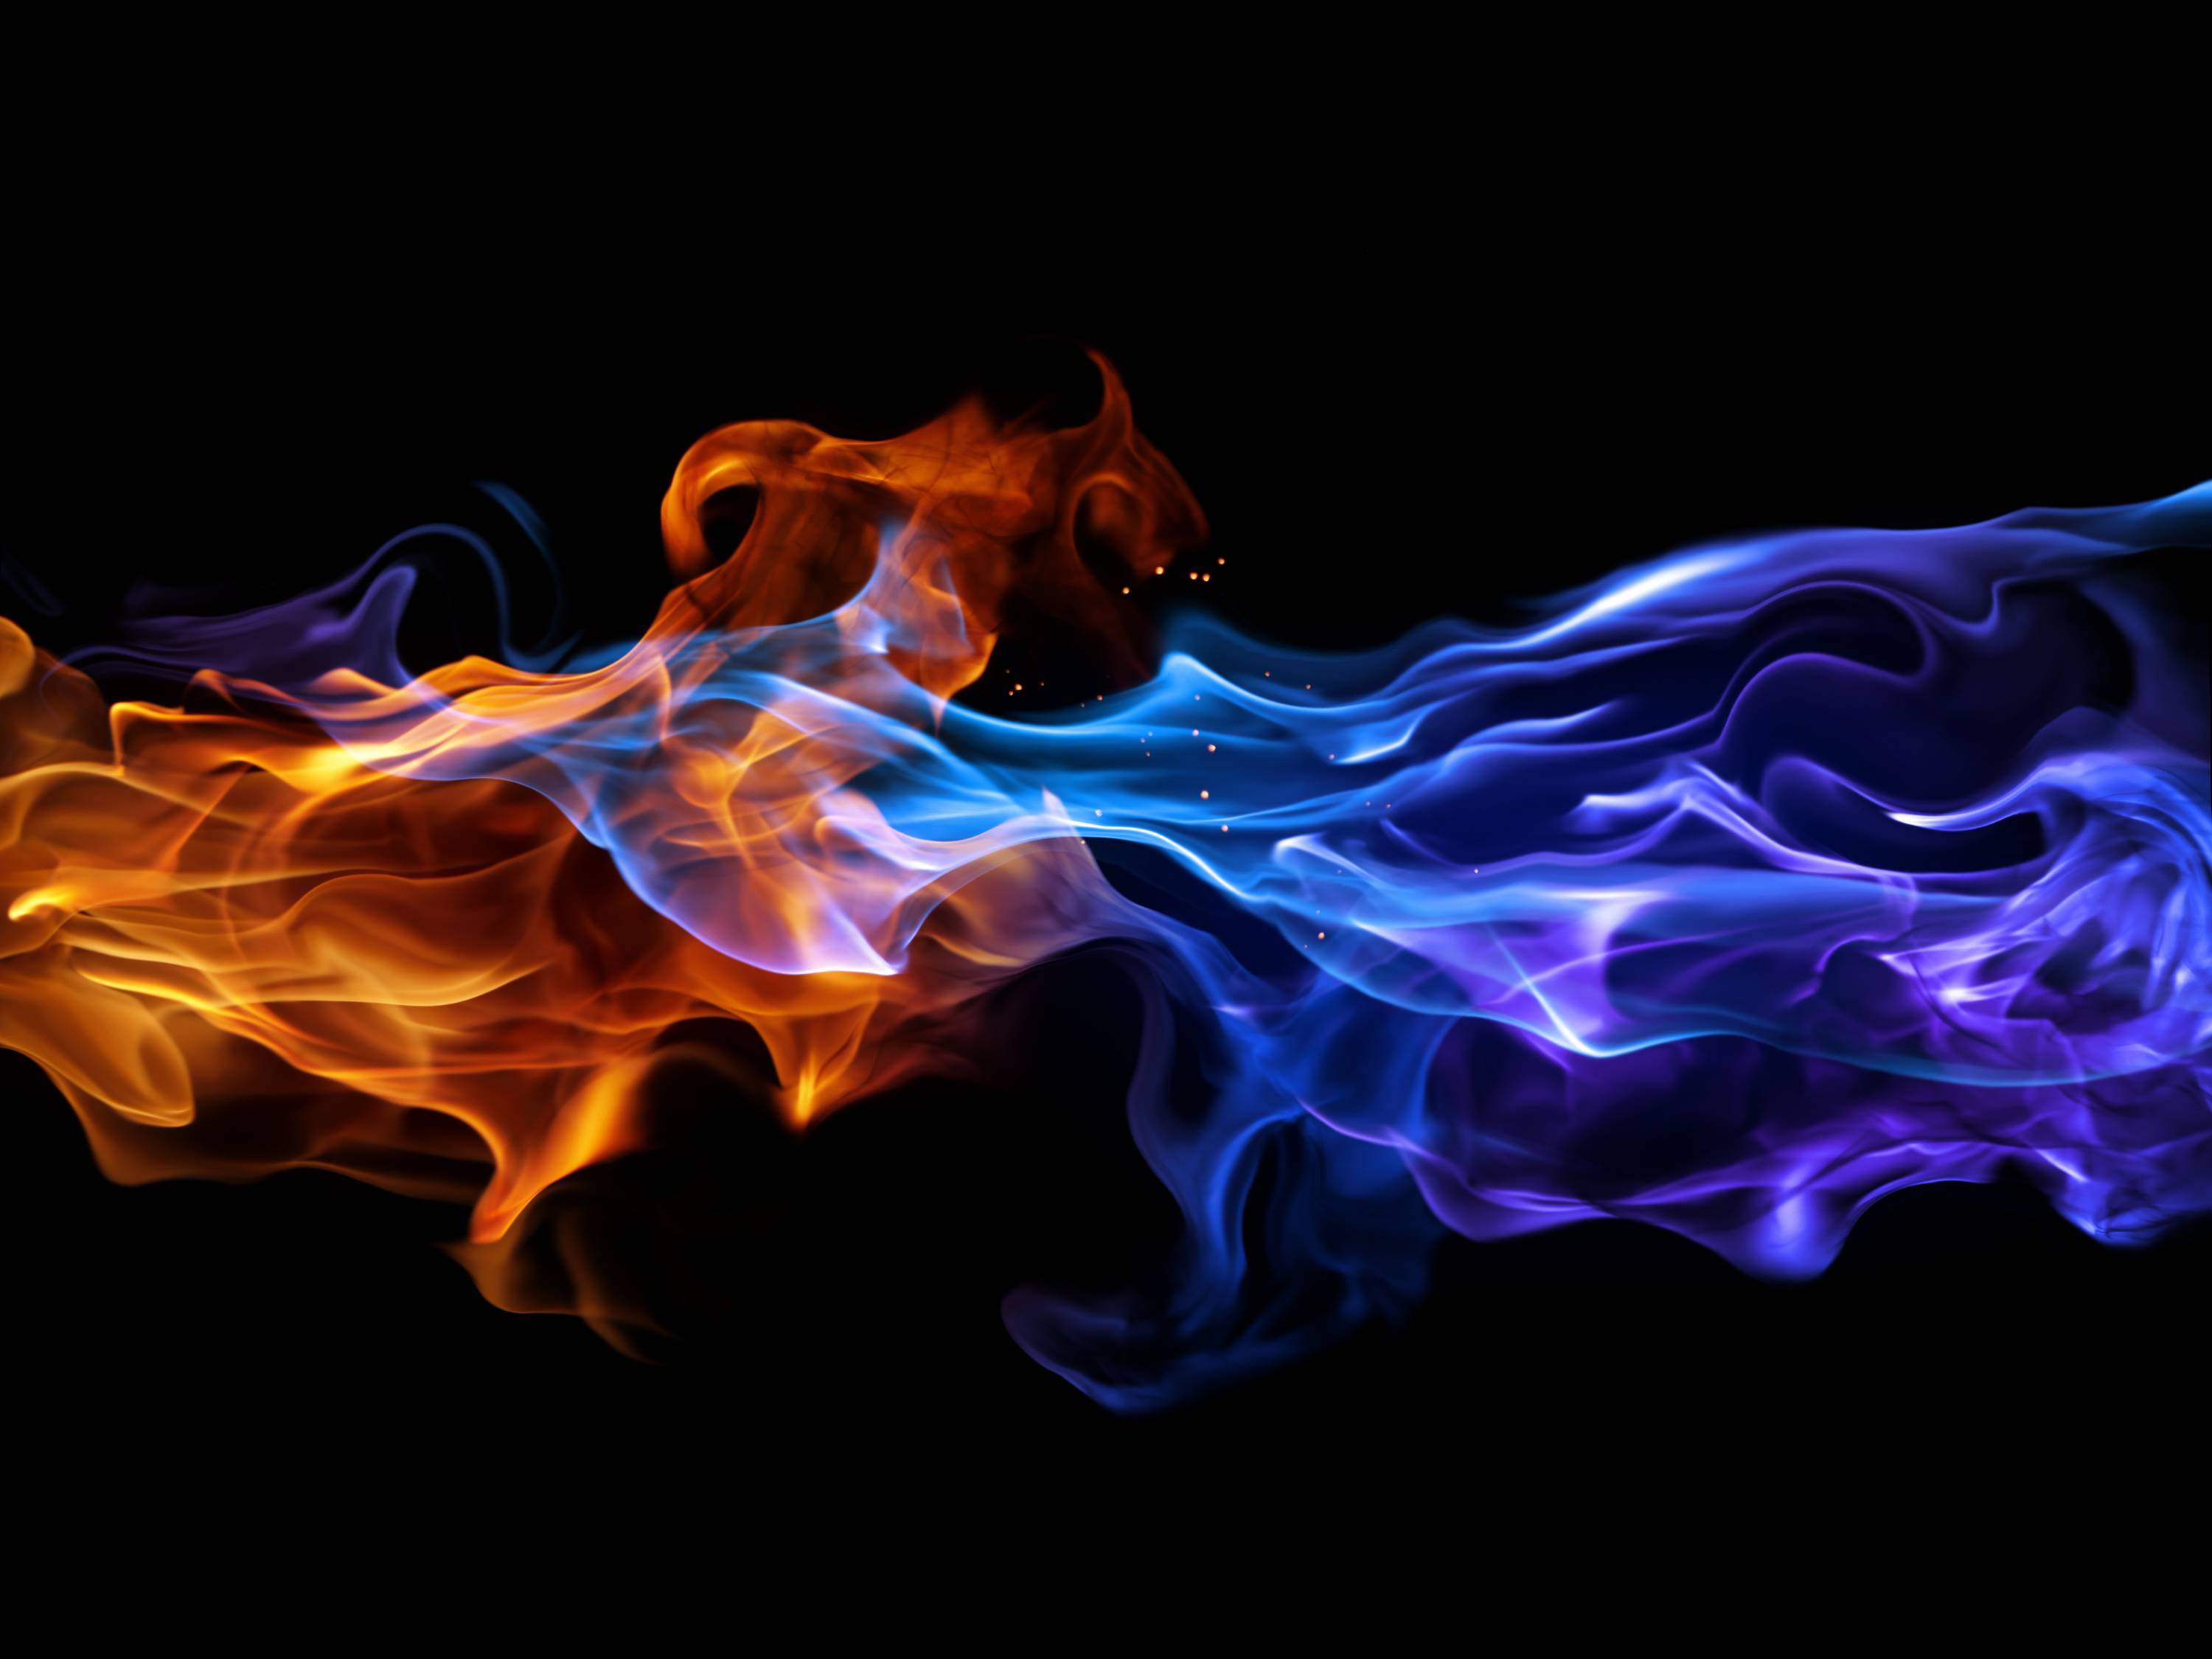 Blue Fire Wallpaper Images amp Pictures   Becuo 3000x2250